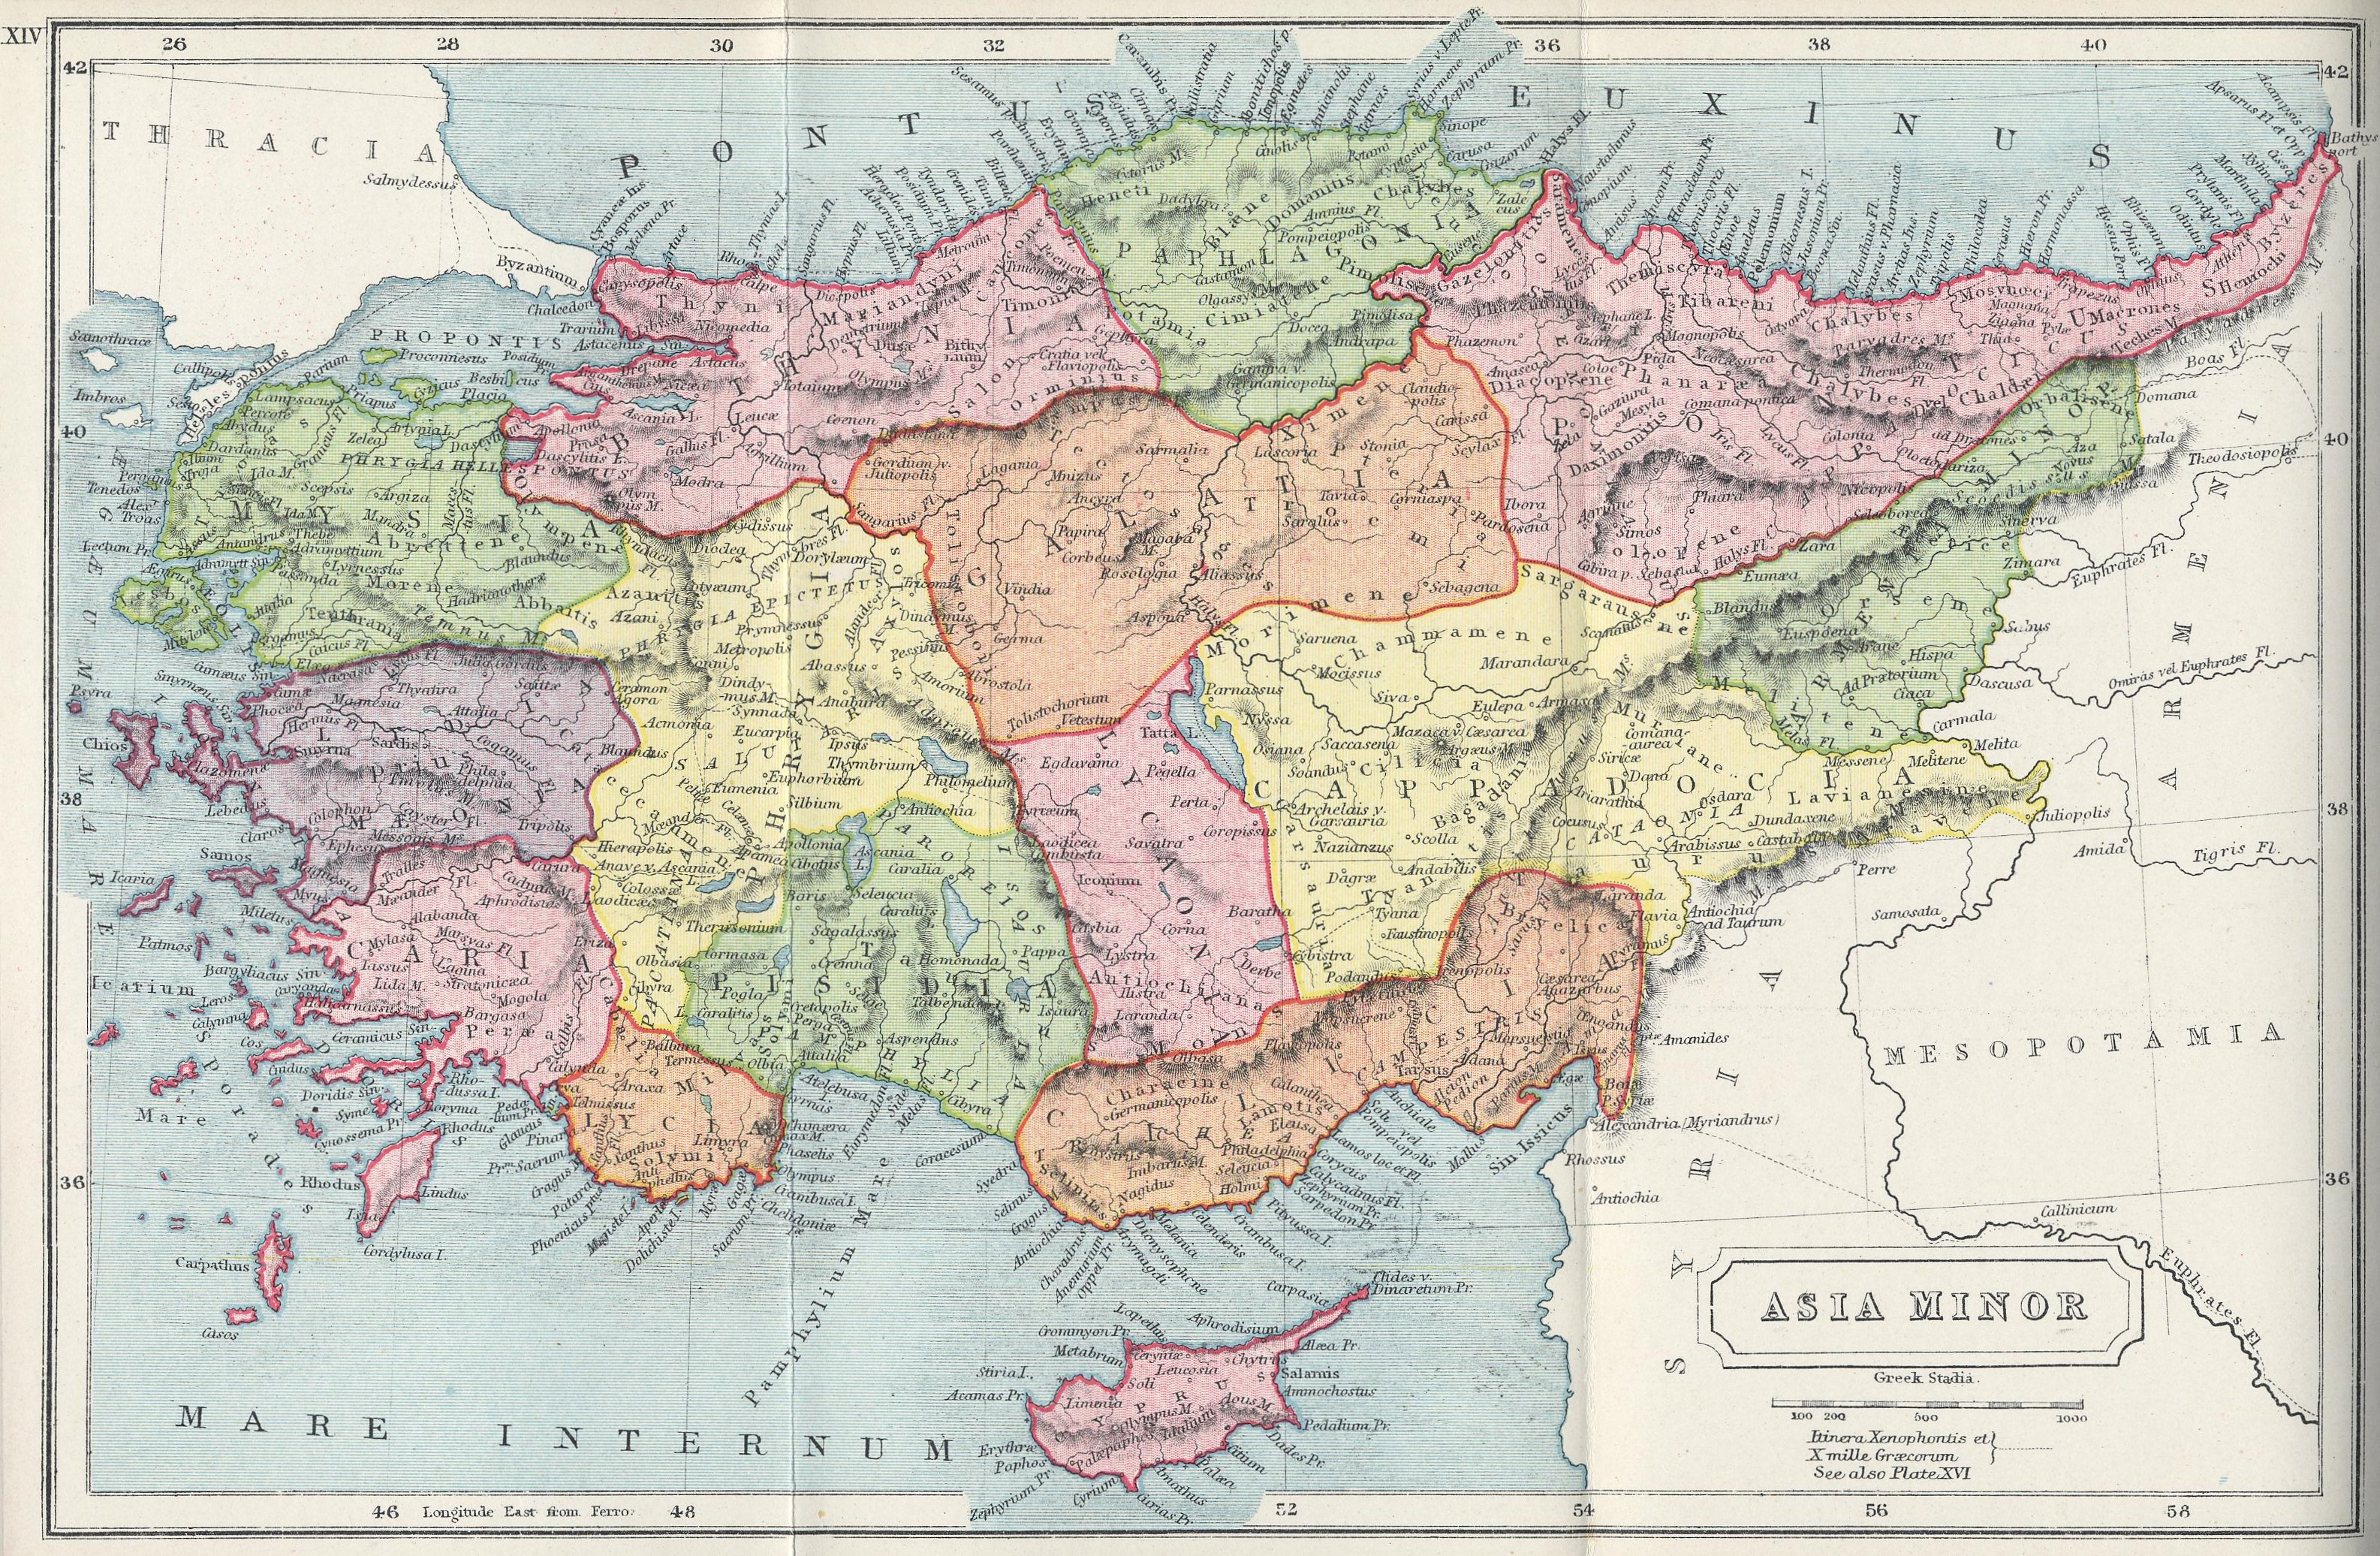 File 1907 map of Asia Minor Atlas of Ancient and Classical Geography     File 1907 map of Asia Minor Atlas of Ancient and Classical Geography by  Samuel